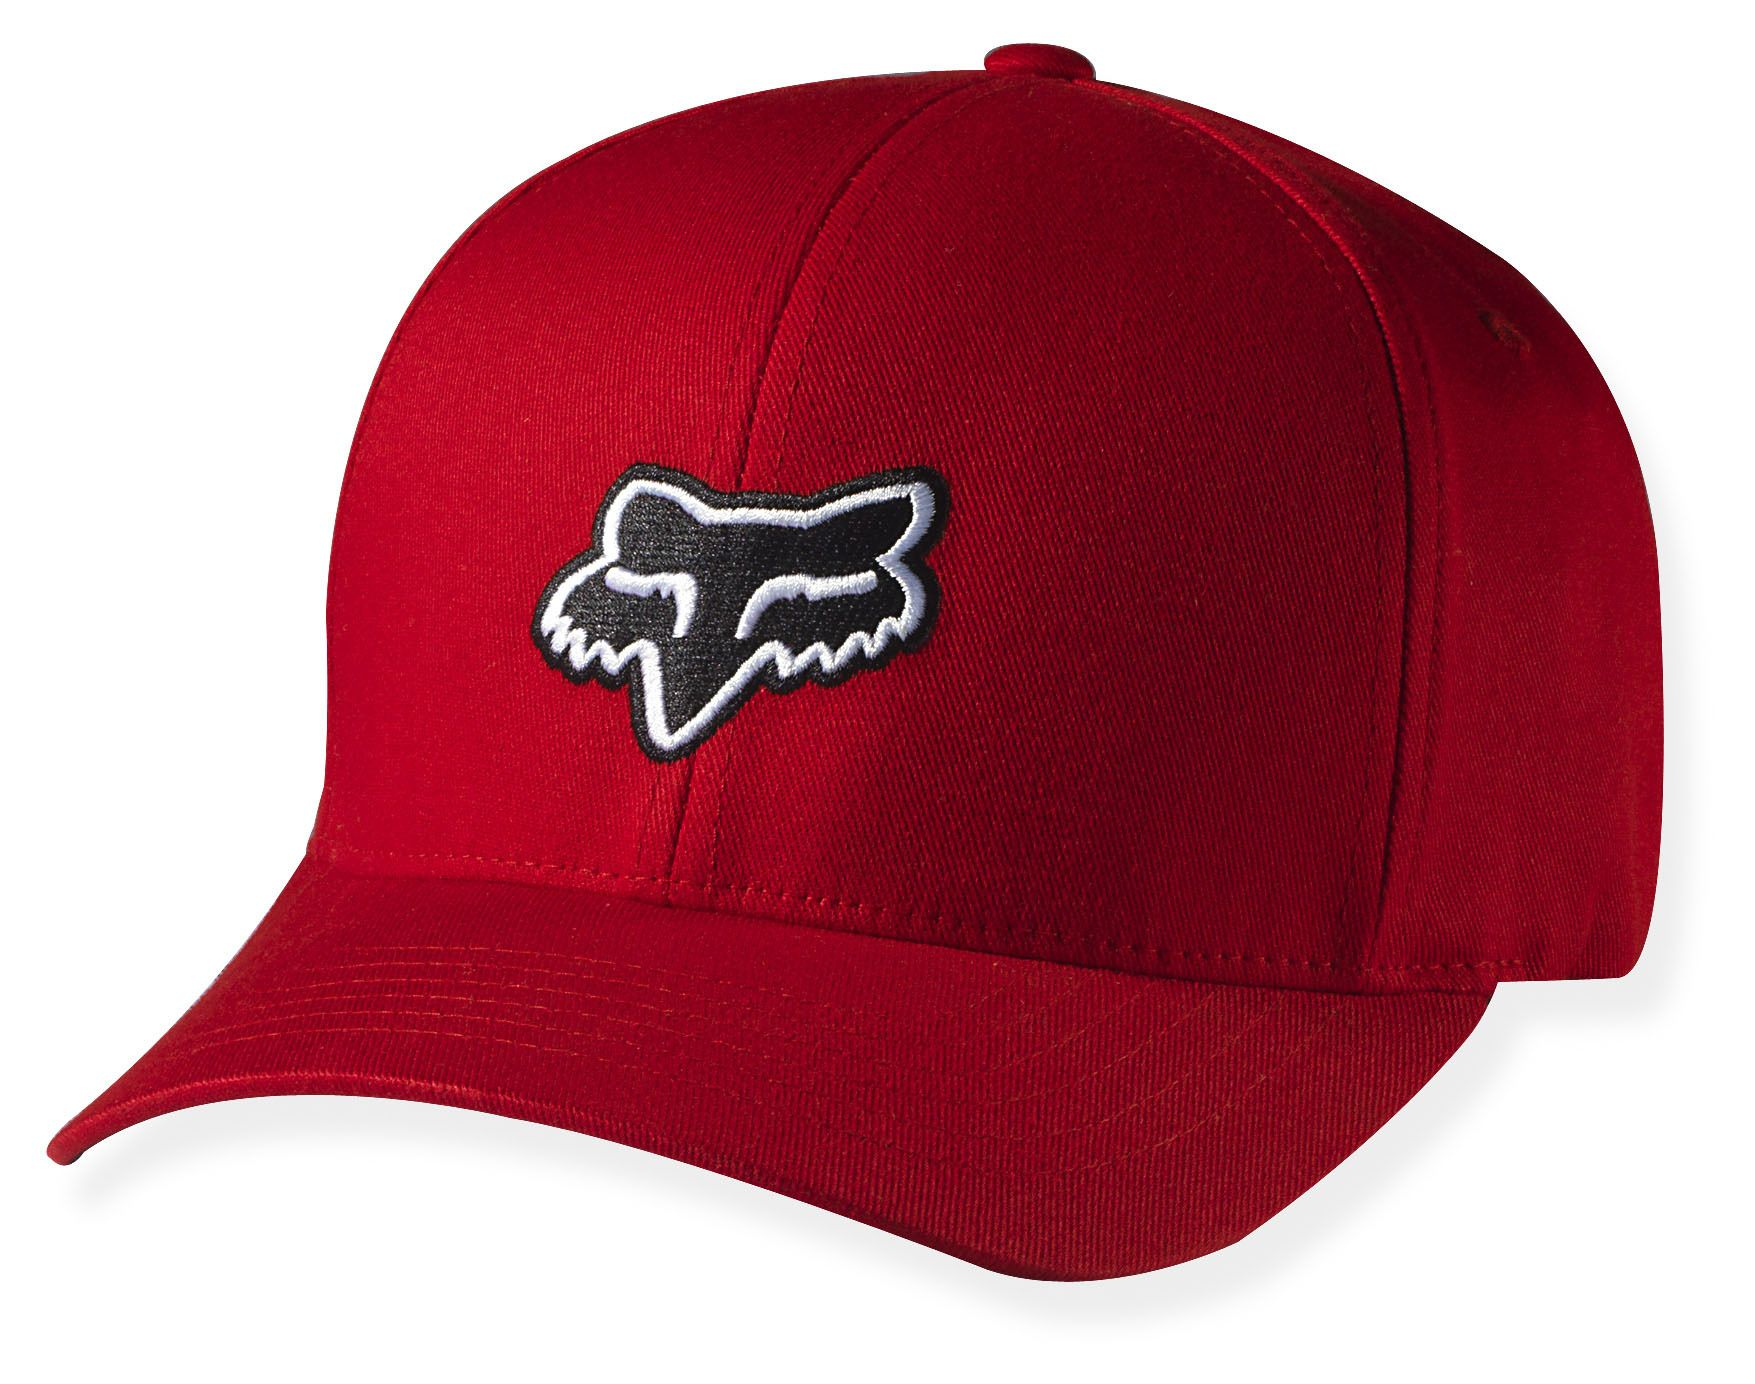 8bf37a4ad67361 Fox Racing Legacy Flexfit Hat | 12% ($3.35) Off! - RevZilla